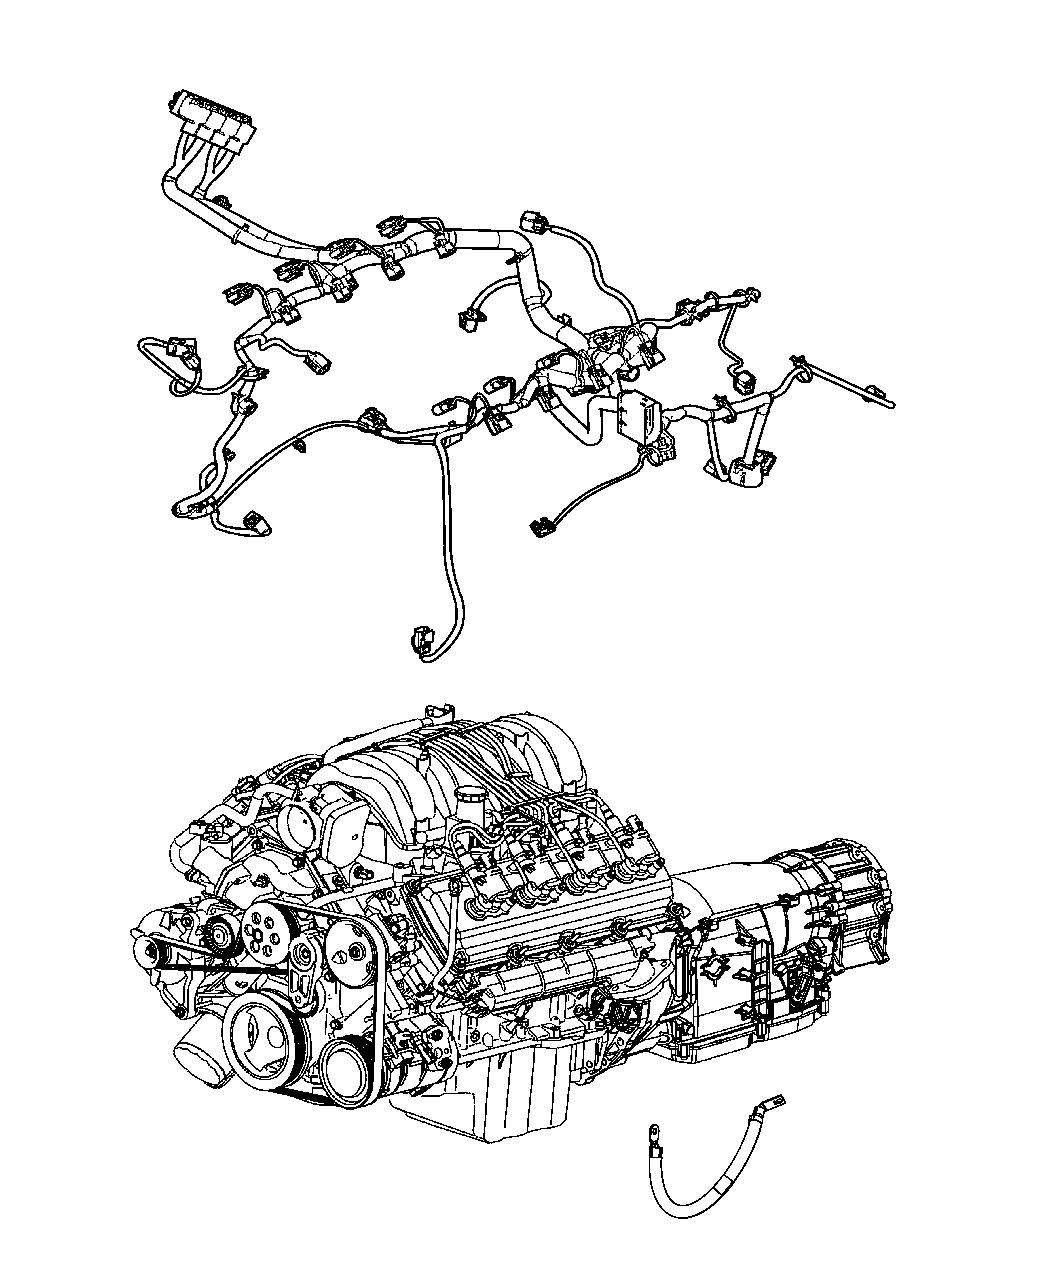 Jeep Grand Cherokee Wiring. Injector. [engine block heater